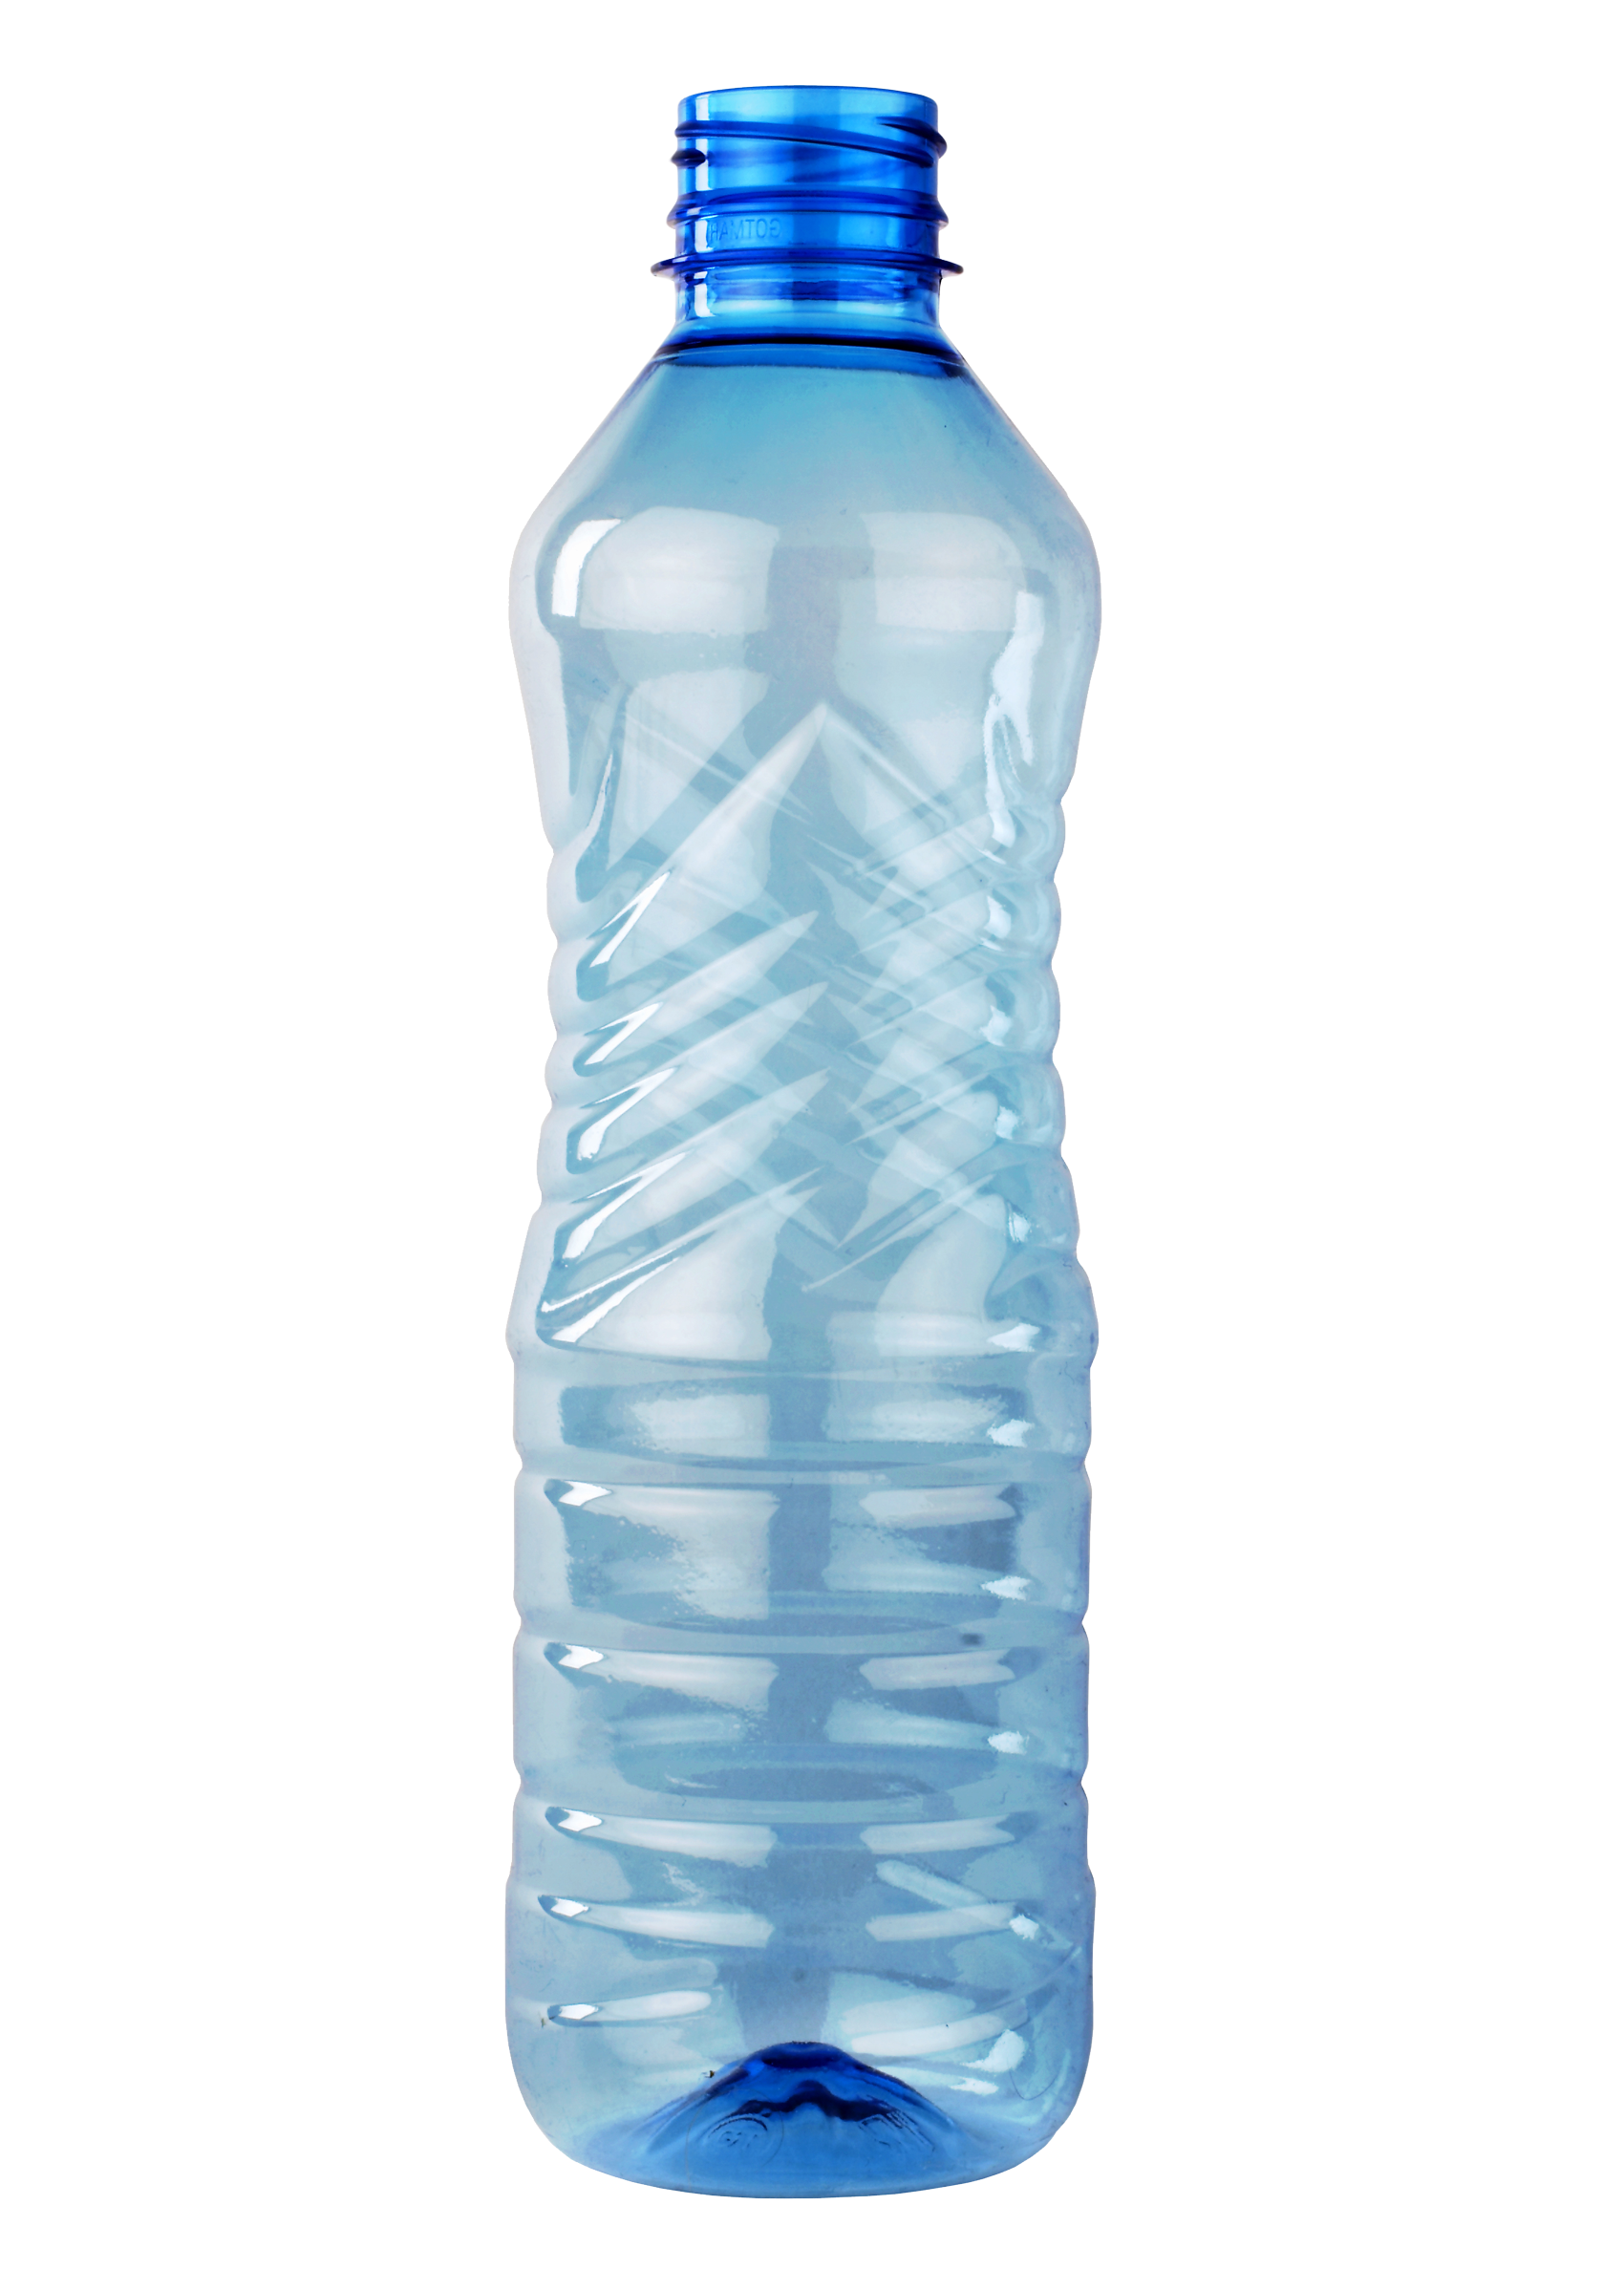 png free stock Bottles clipart empty free. Vector bottle plastic